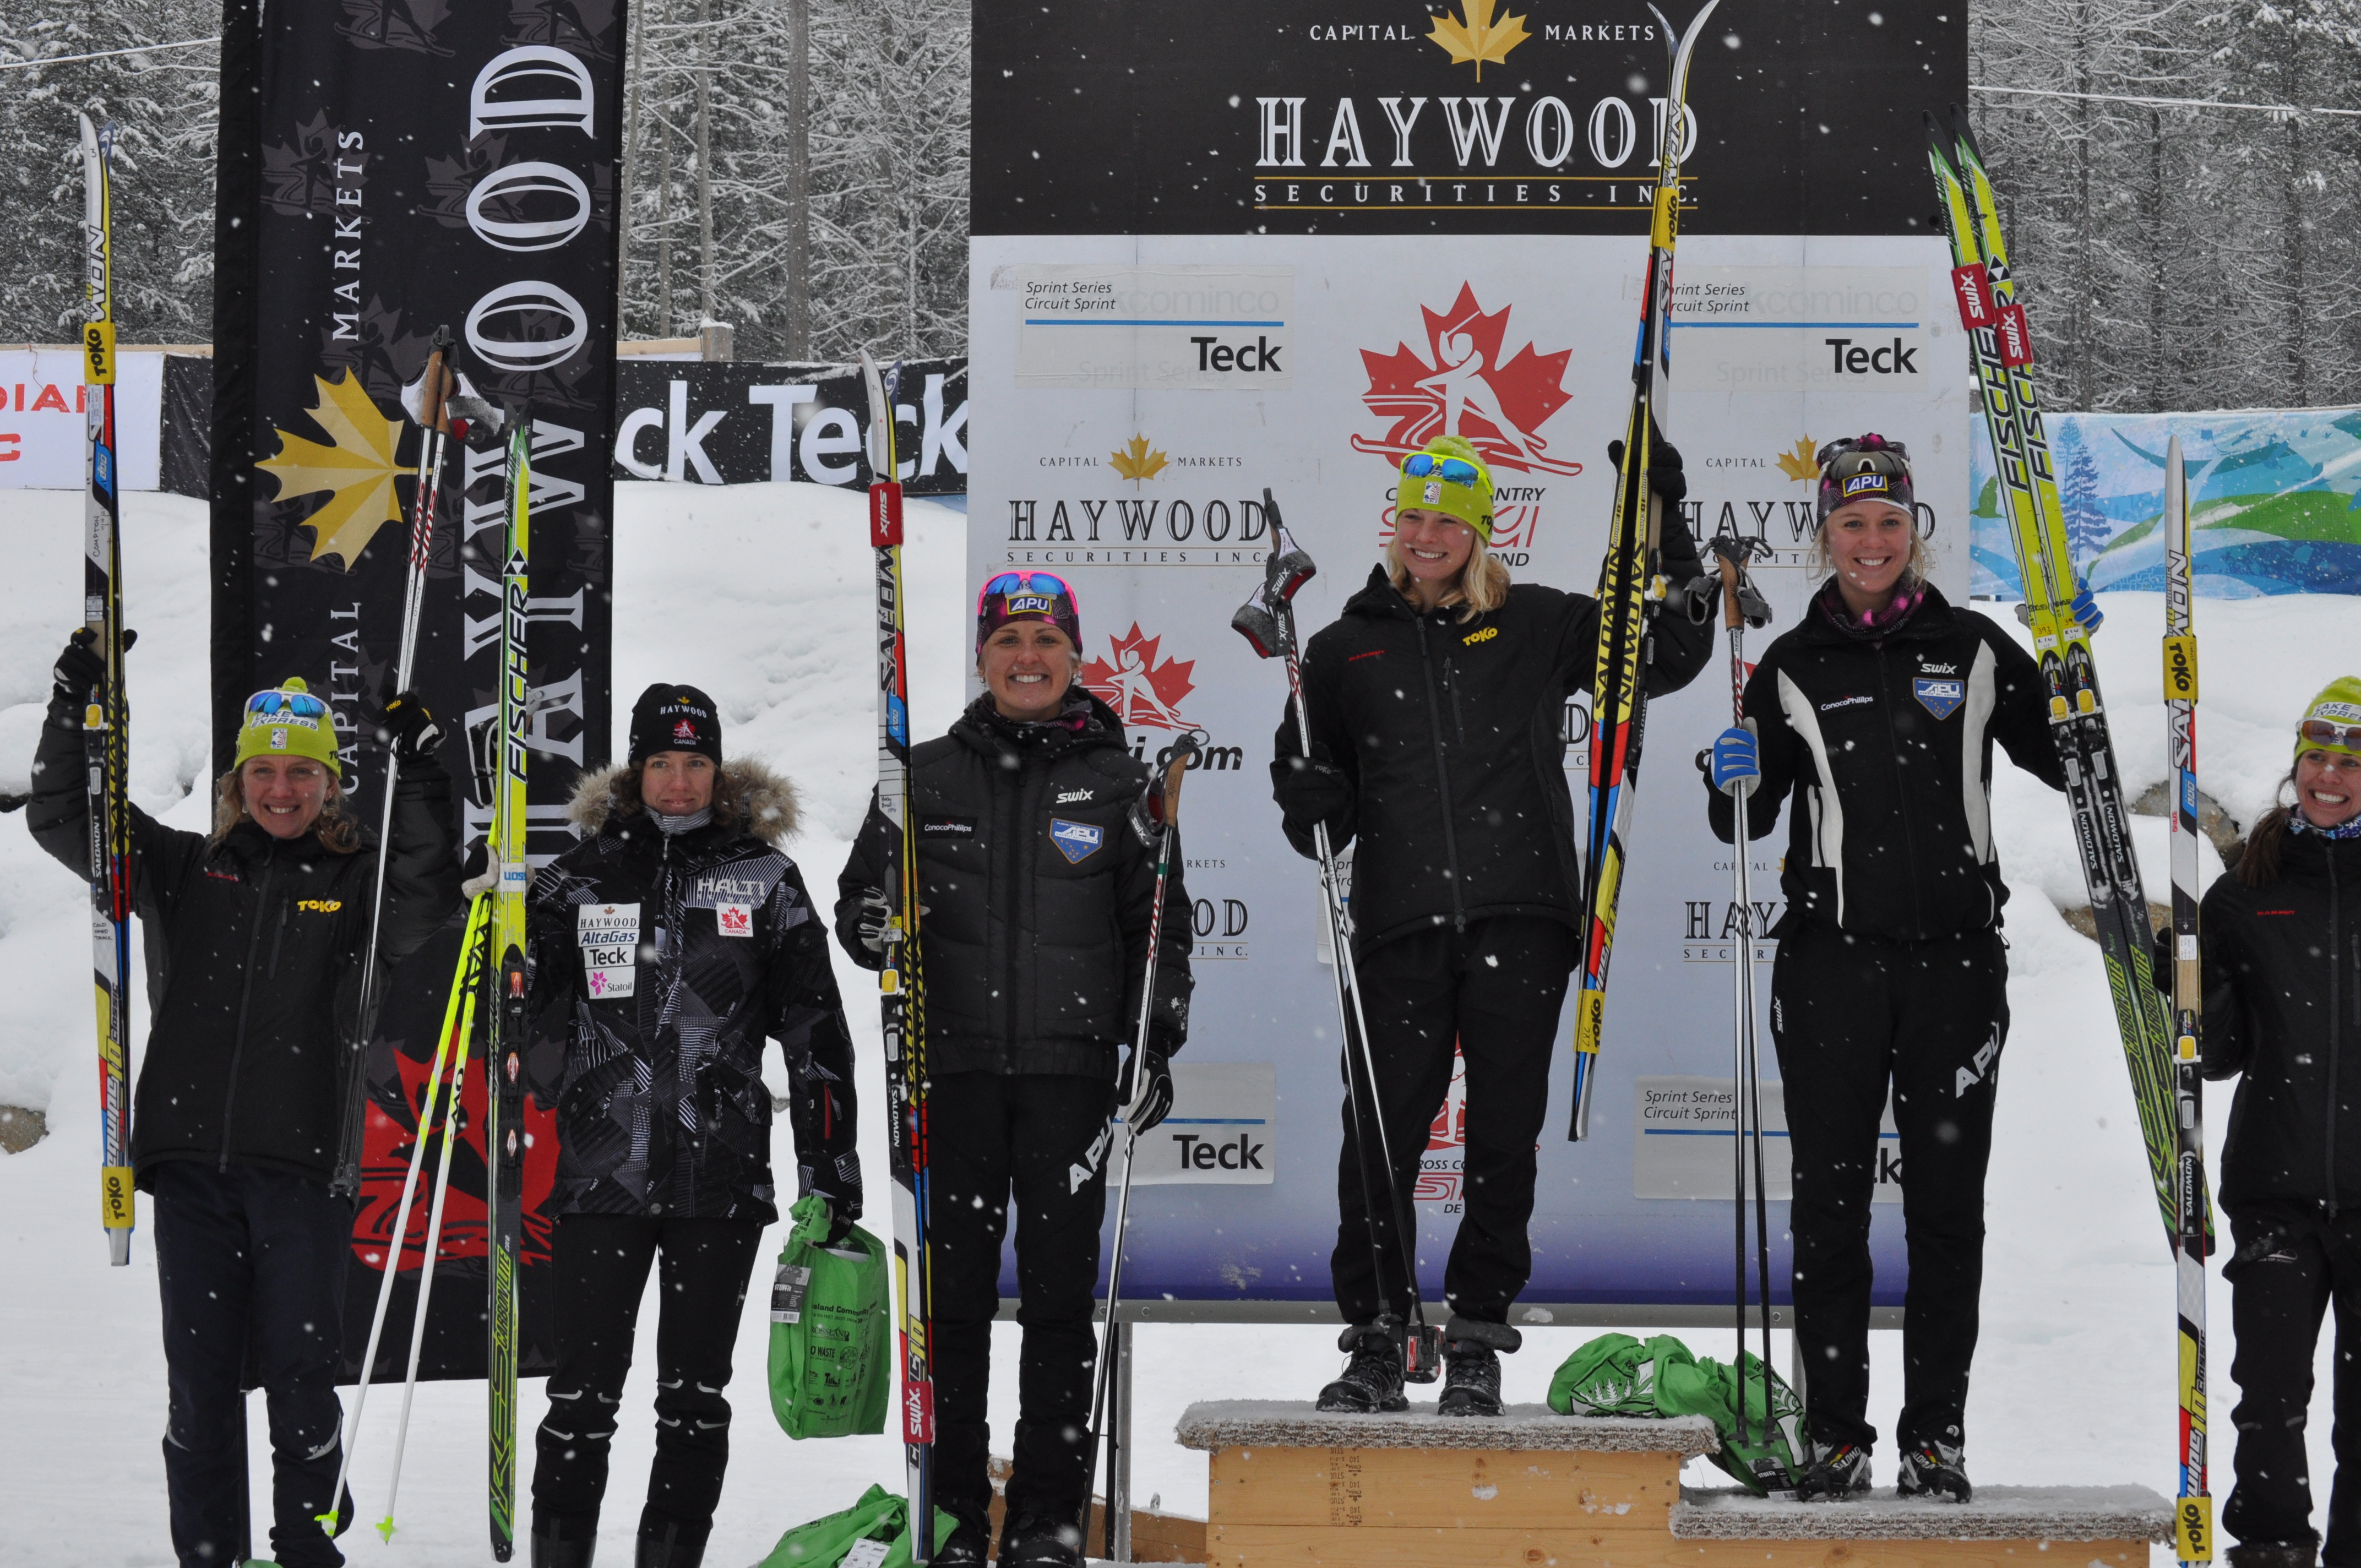 https://fasterskier.com/wp-content/blogs.dir/1/files/2010/12/Rossland-minitour-overall-women-winners.jpg